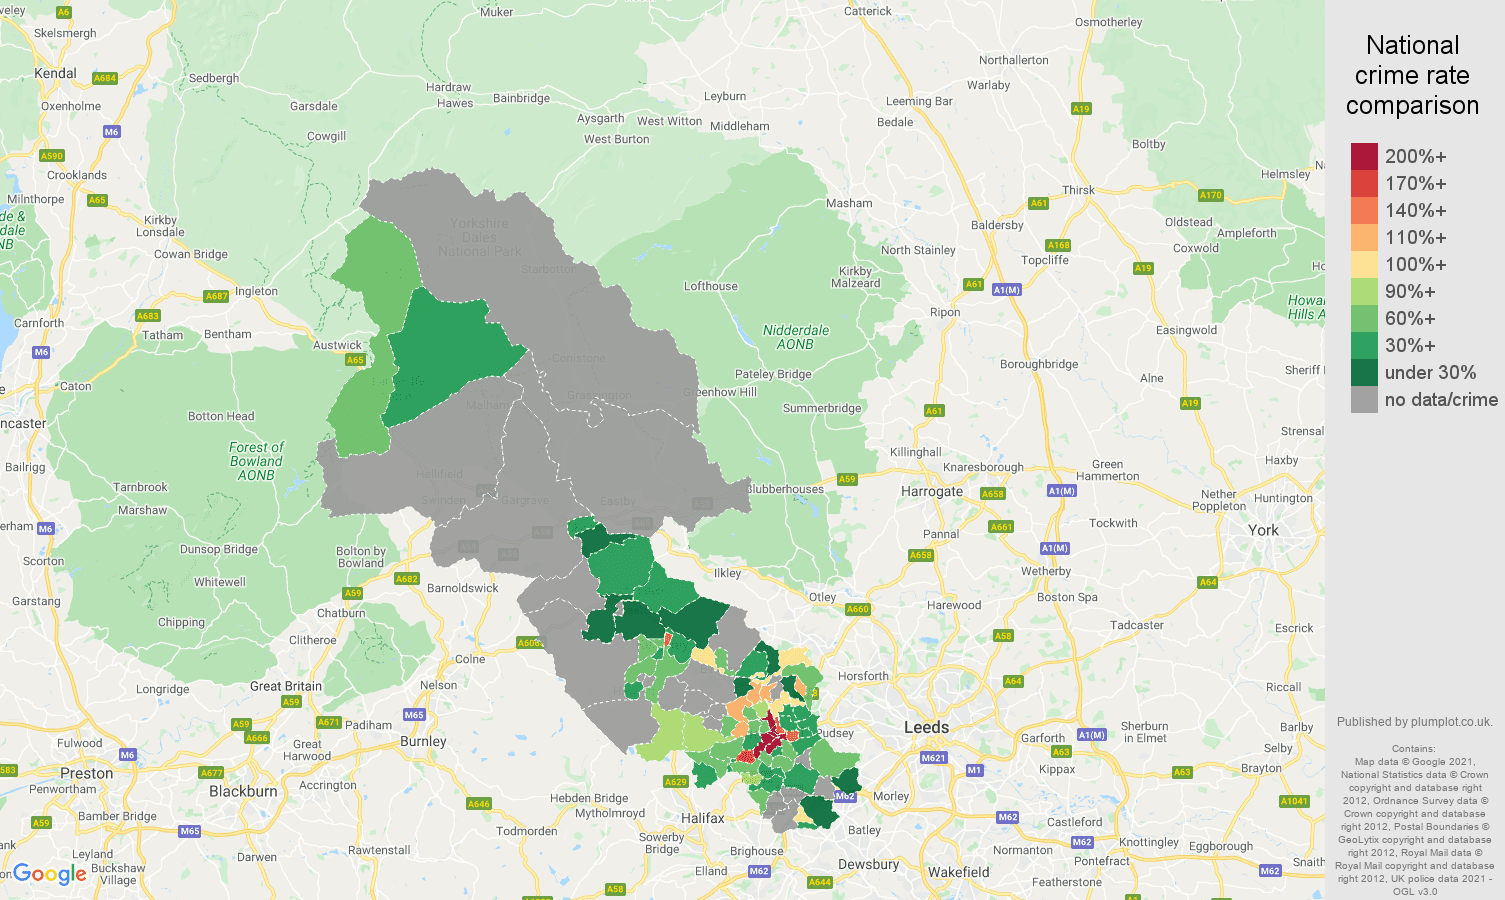 Bradford theft from the person crime rate comparison map